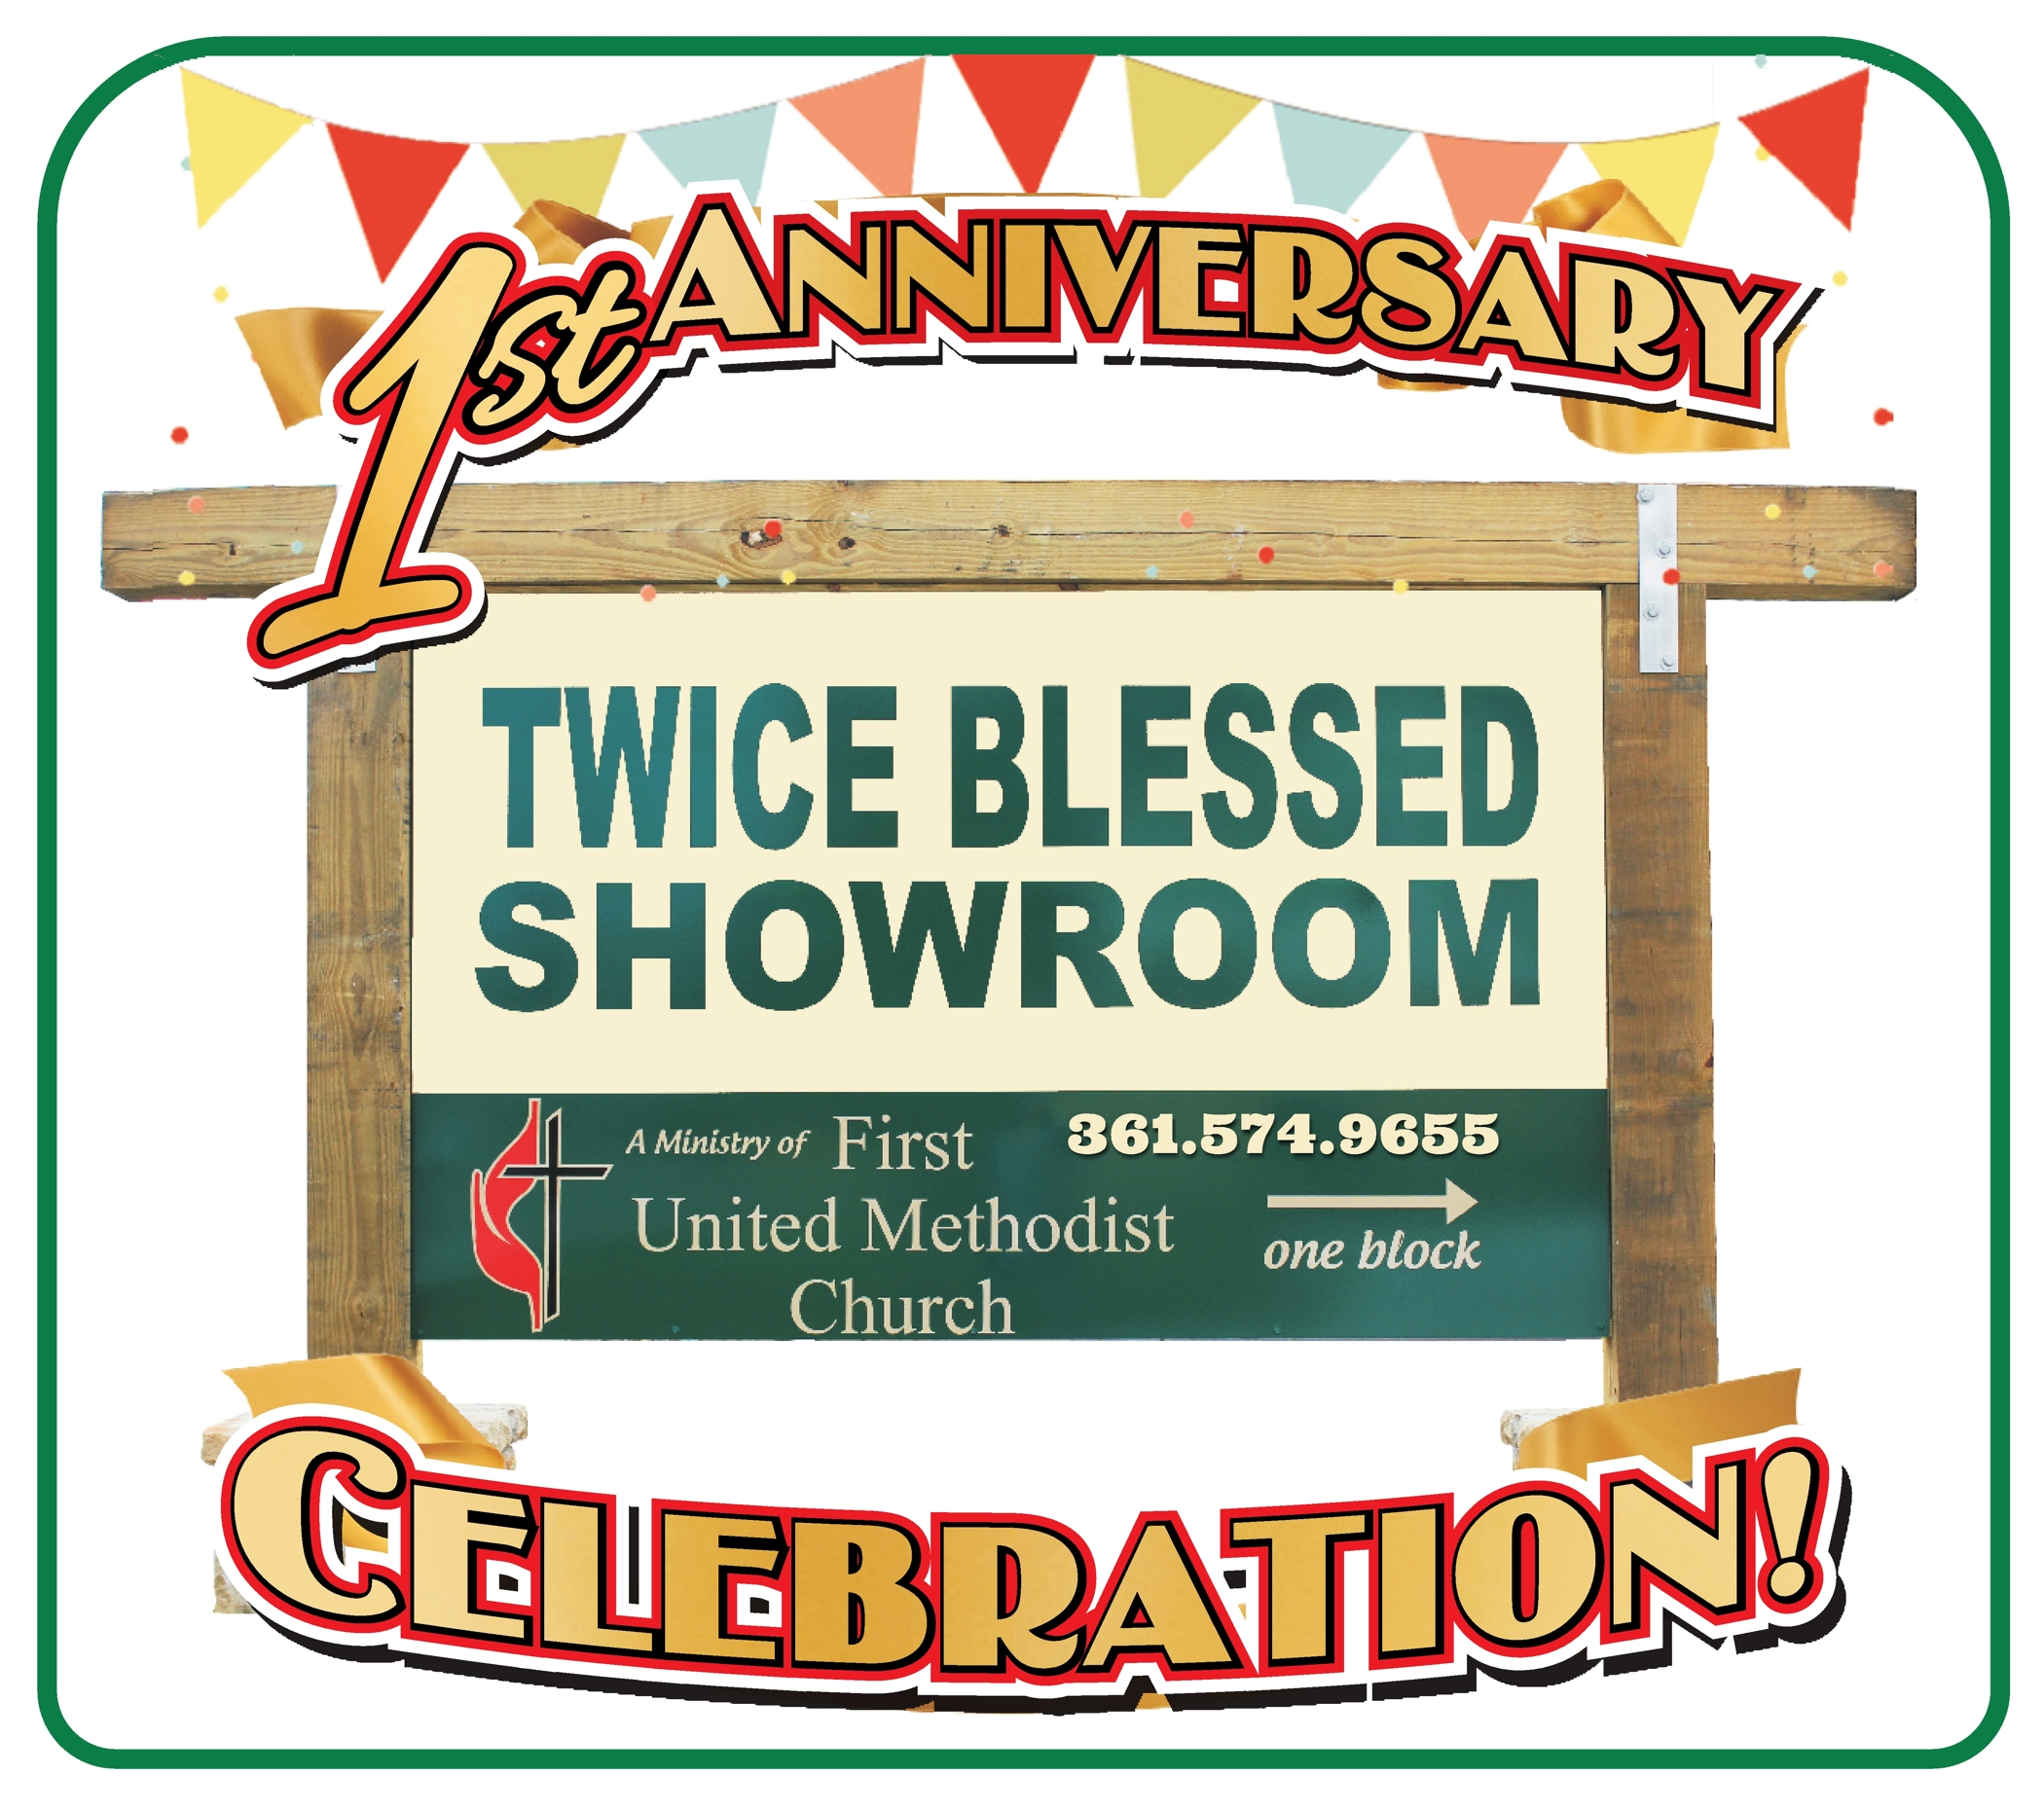 Twice 20blessed 20showroom  201st 20anniversary